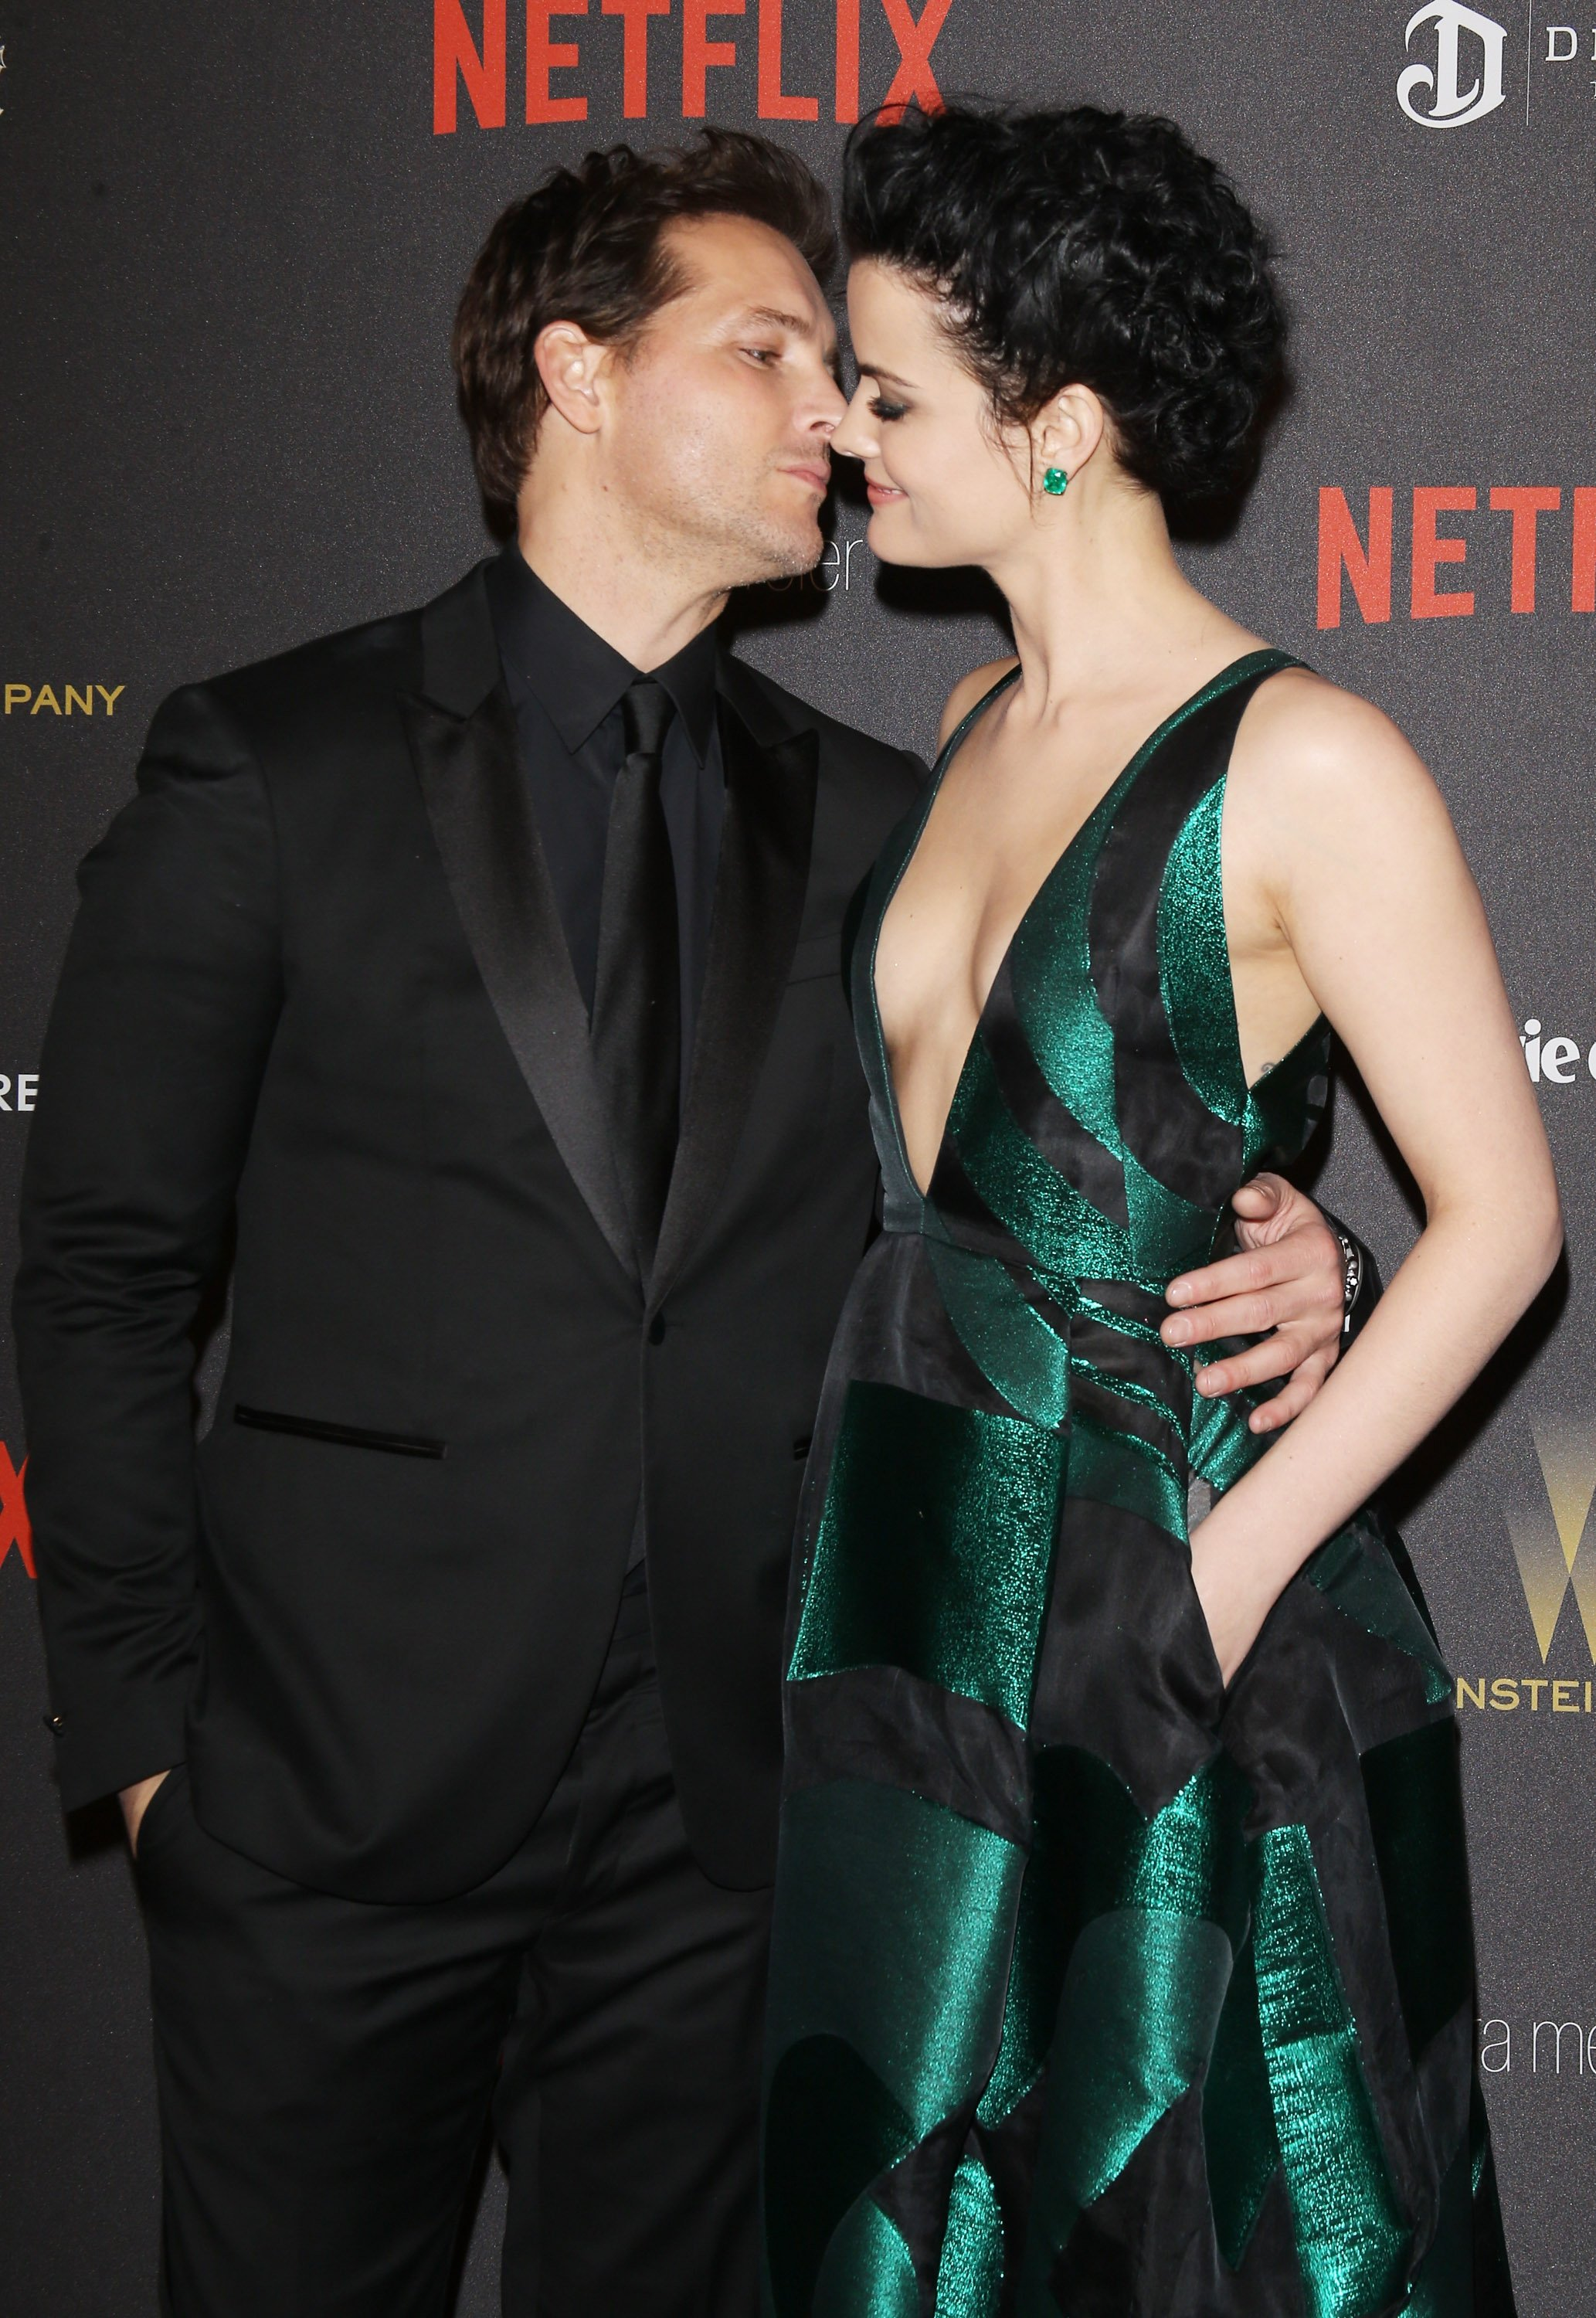 Peter Facinelli and Jaimie Alexander at the 2016 Weinstein Company on January 10, 2016 | Photo: Getty Images